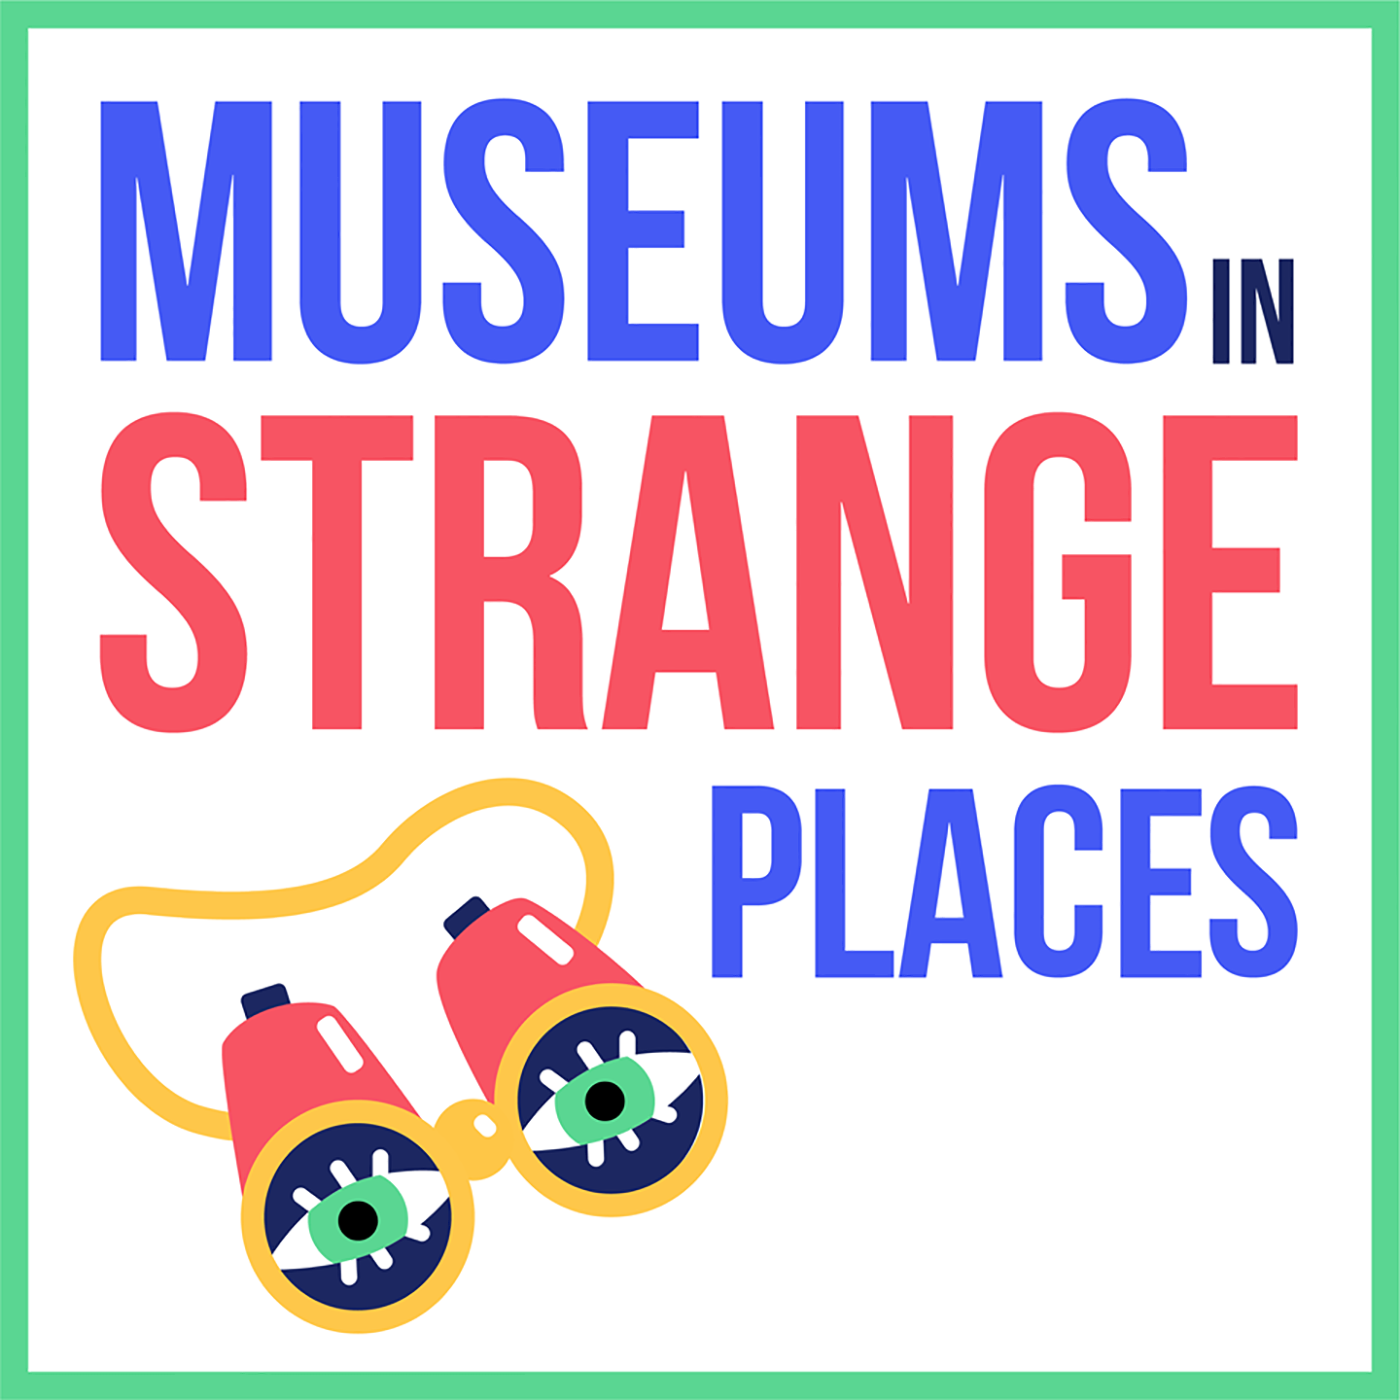 Museums in Strange Places album art